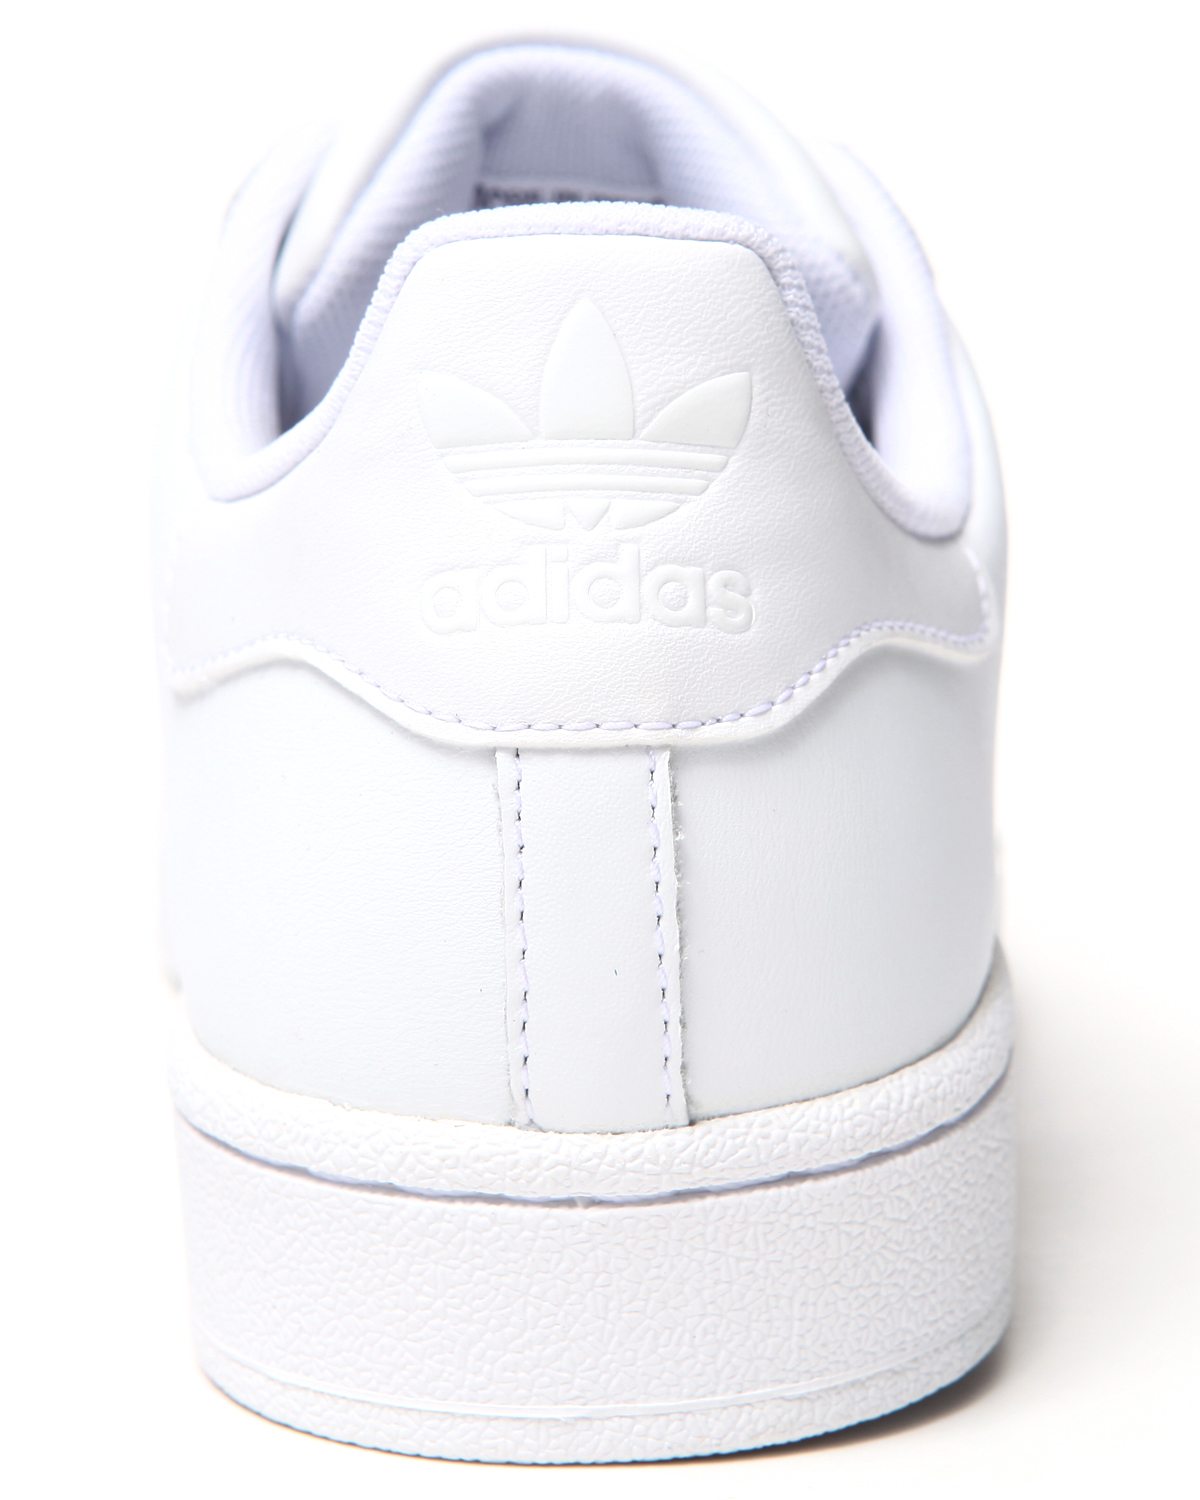 Superstar 2 white on white sneakers by adidas